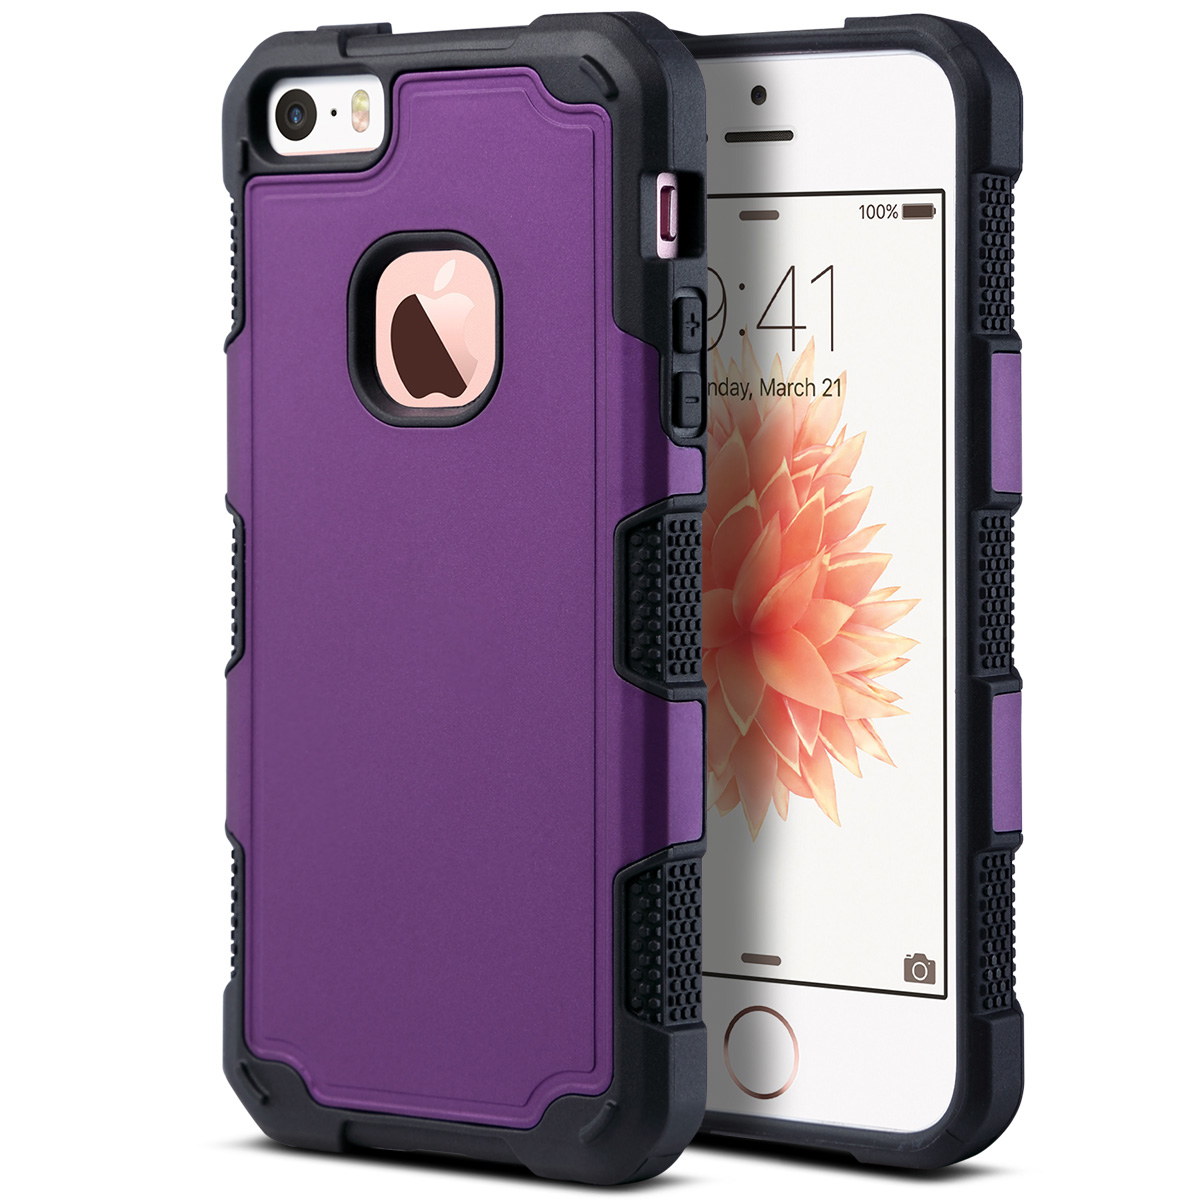 iphone 5 protective case for iphone 5 5s se hybrid rugged shockproof 14560